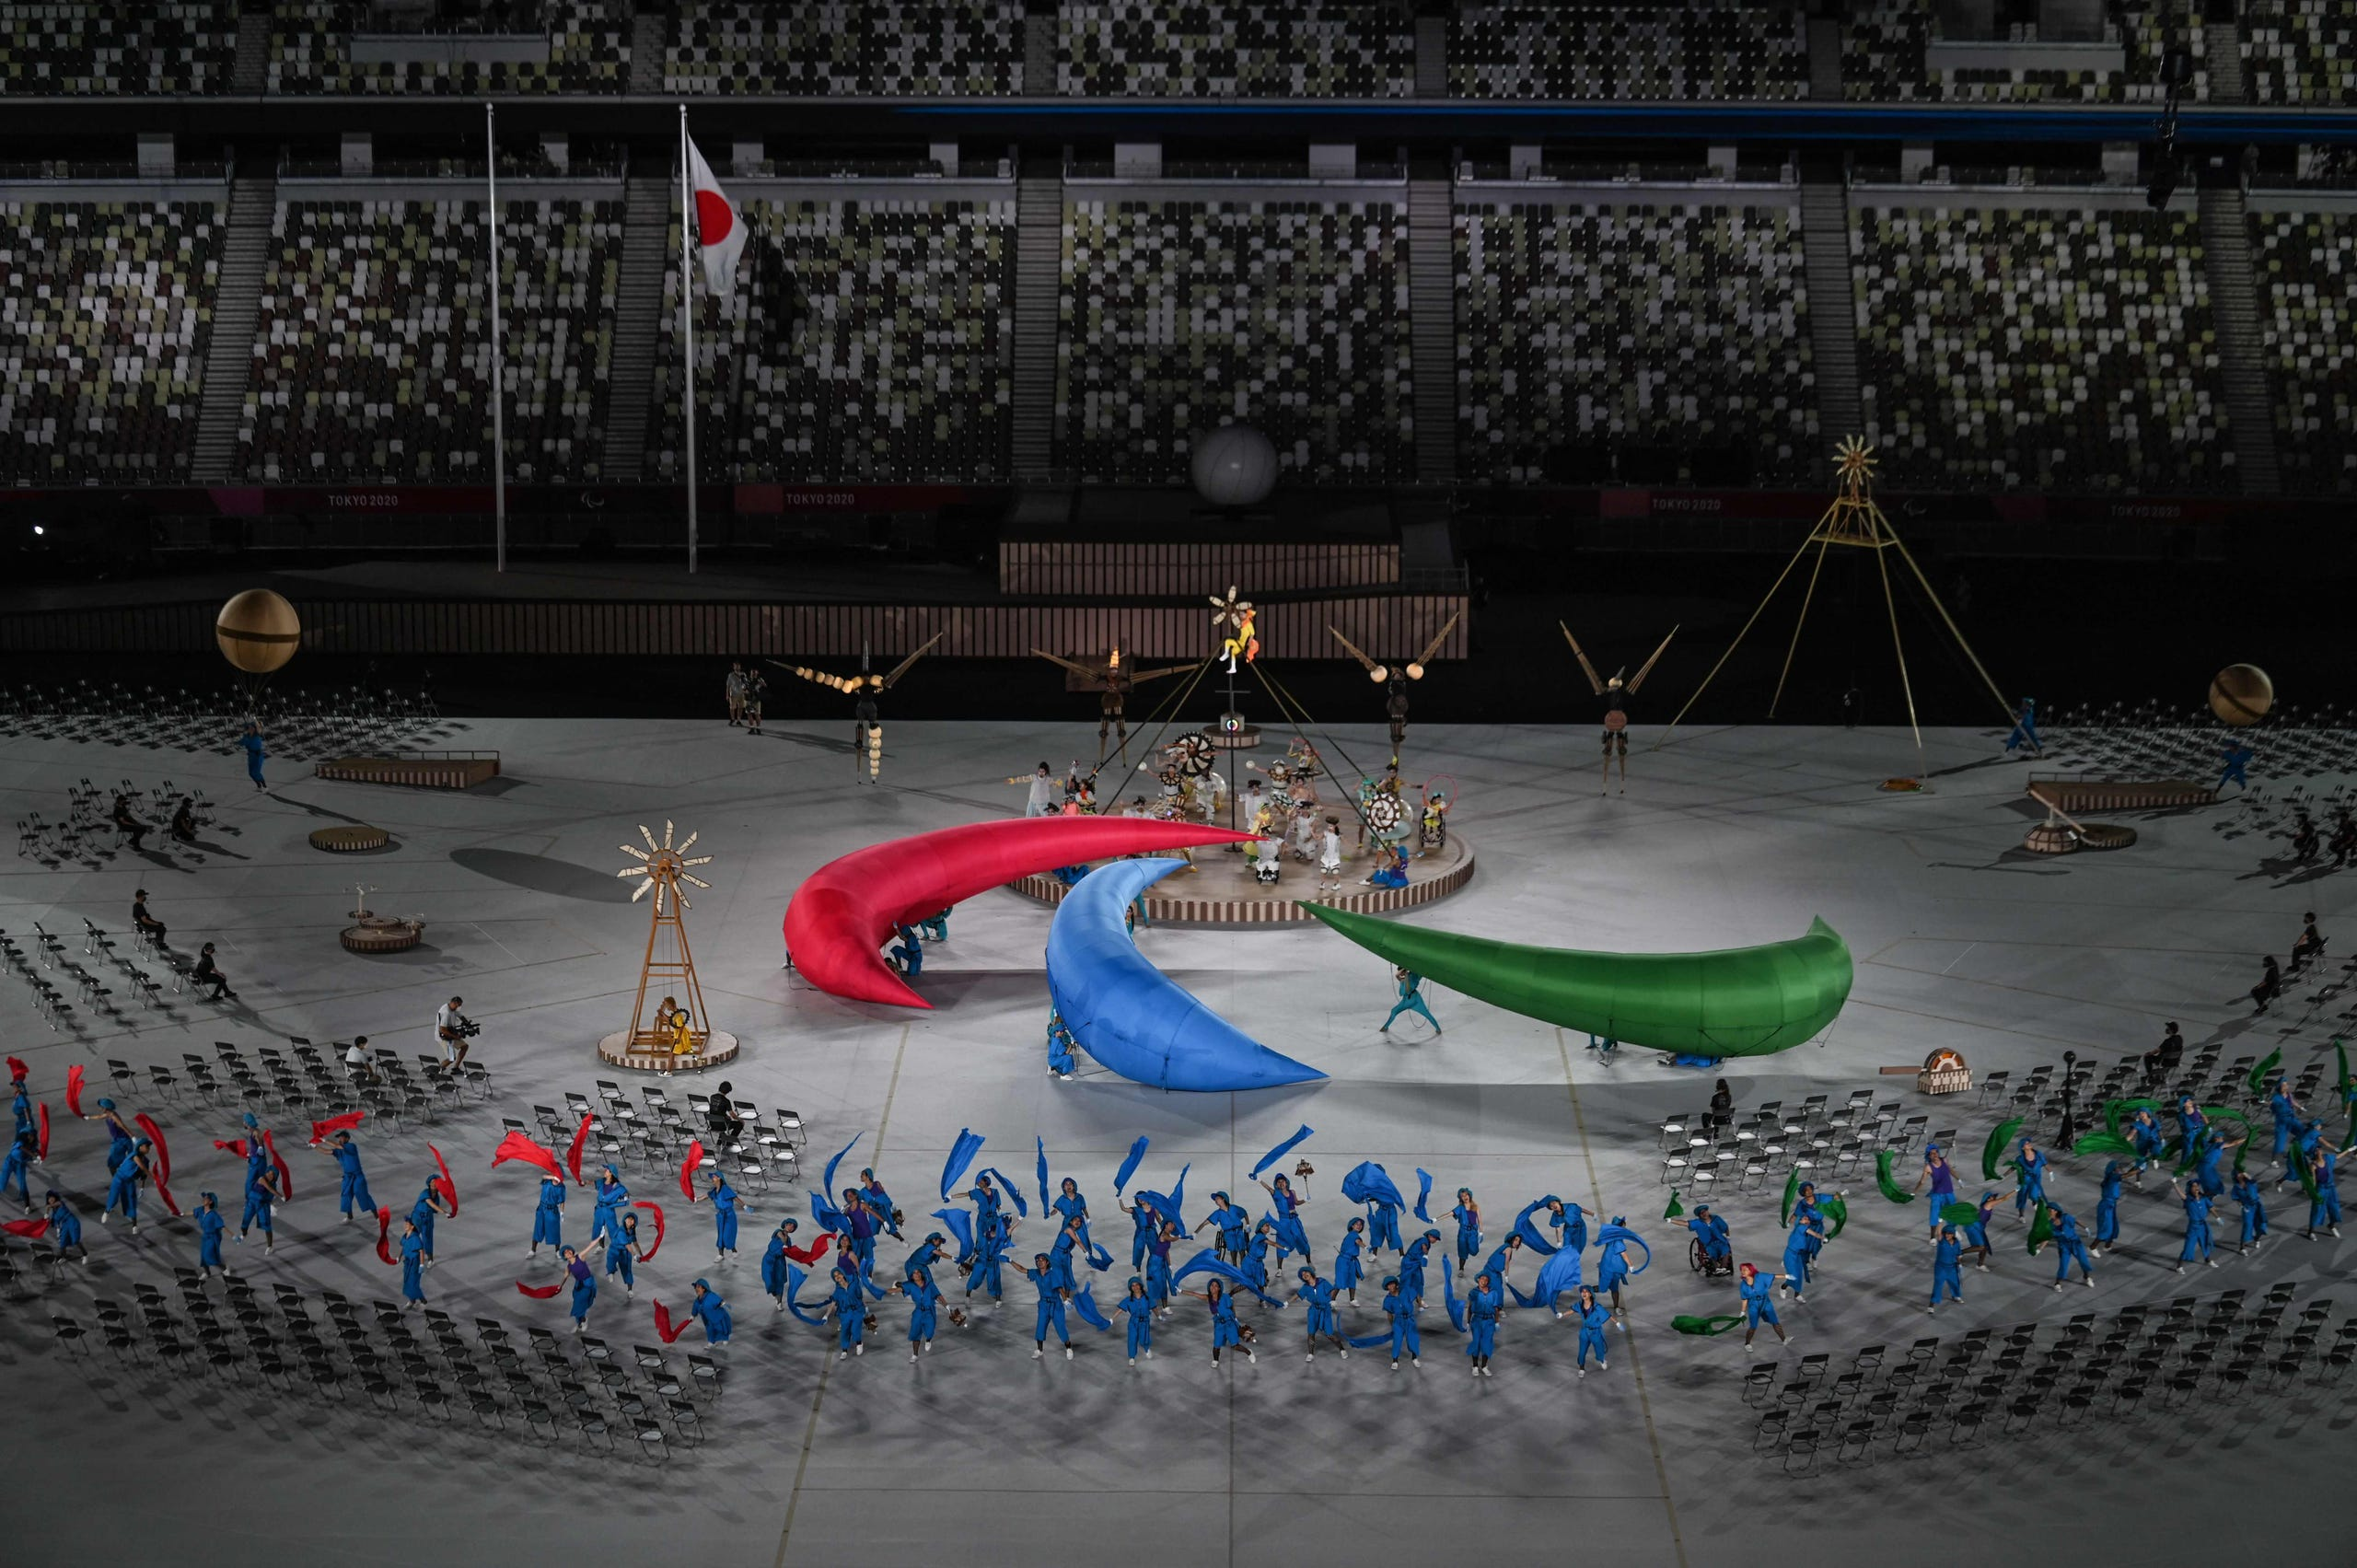 August 24, 2021: Performers take part in the opening ceremony for the Tokyo 2020 Paralympic Games at the Olympic Stadium in Tokyo.